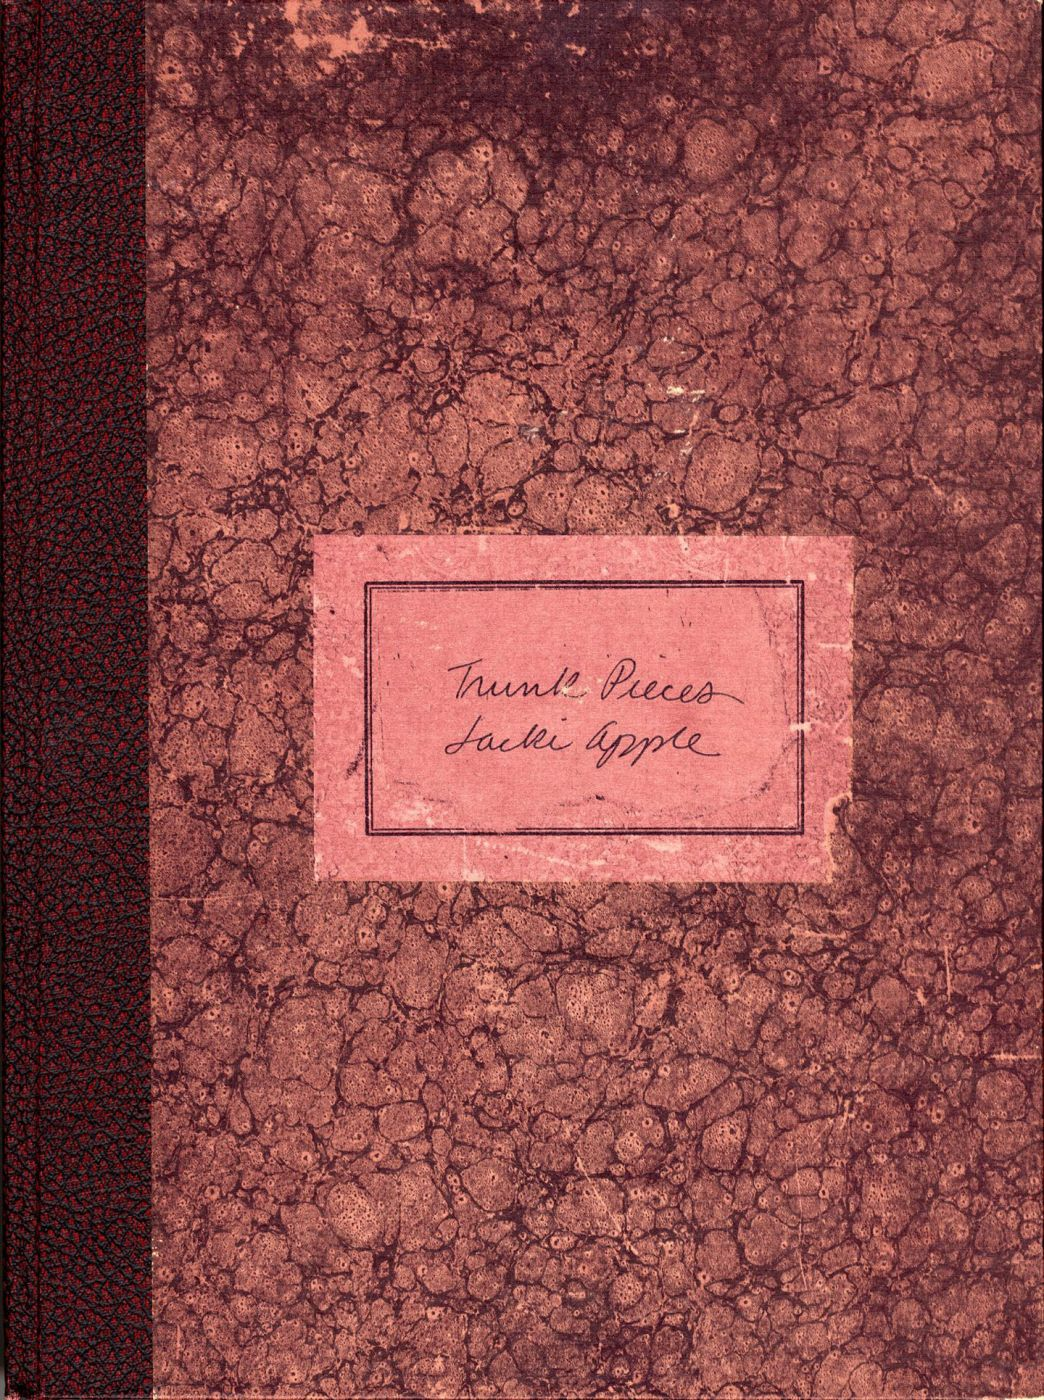 Jacki Apple: Trunk Pieces, Limited Edition [SIGNED]